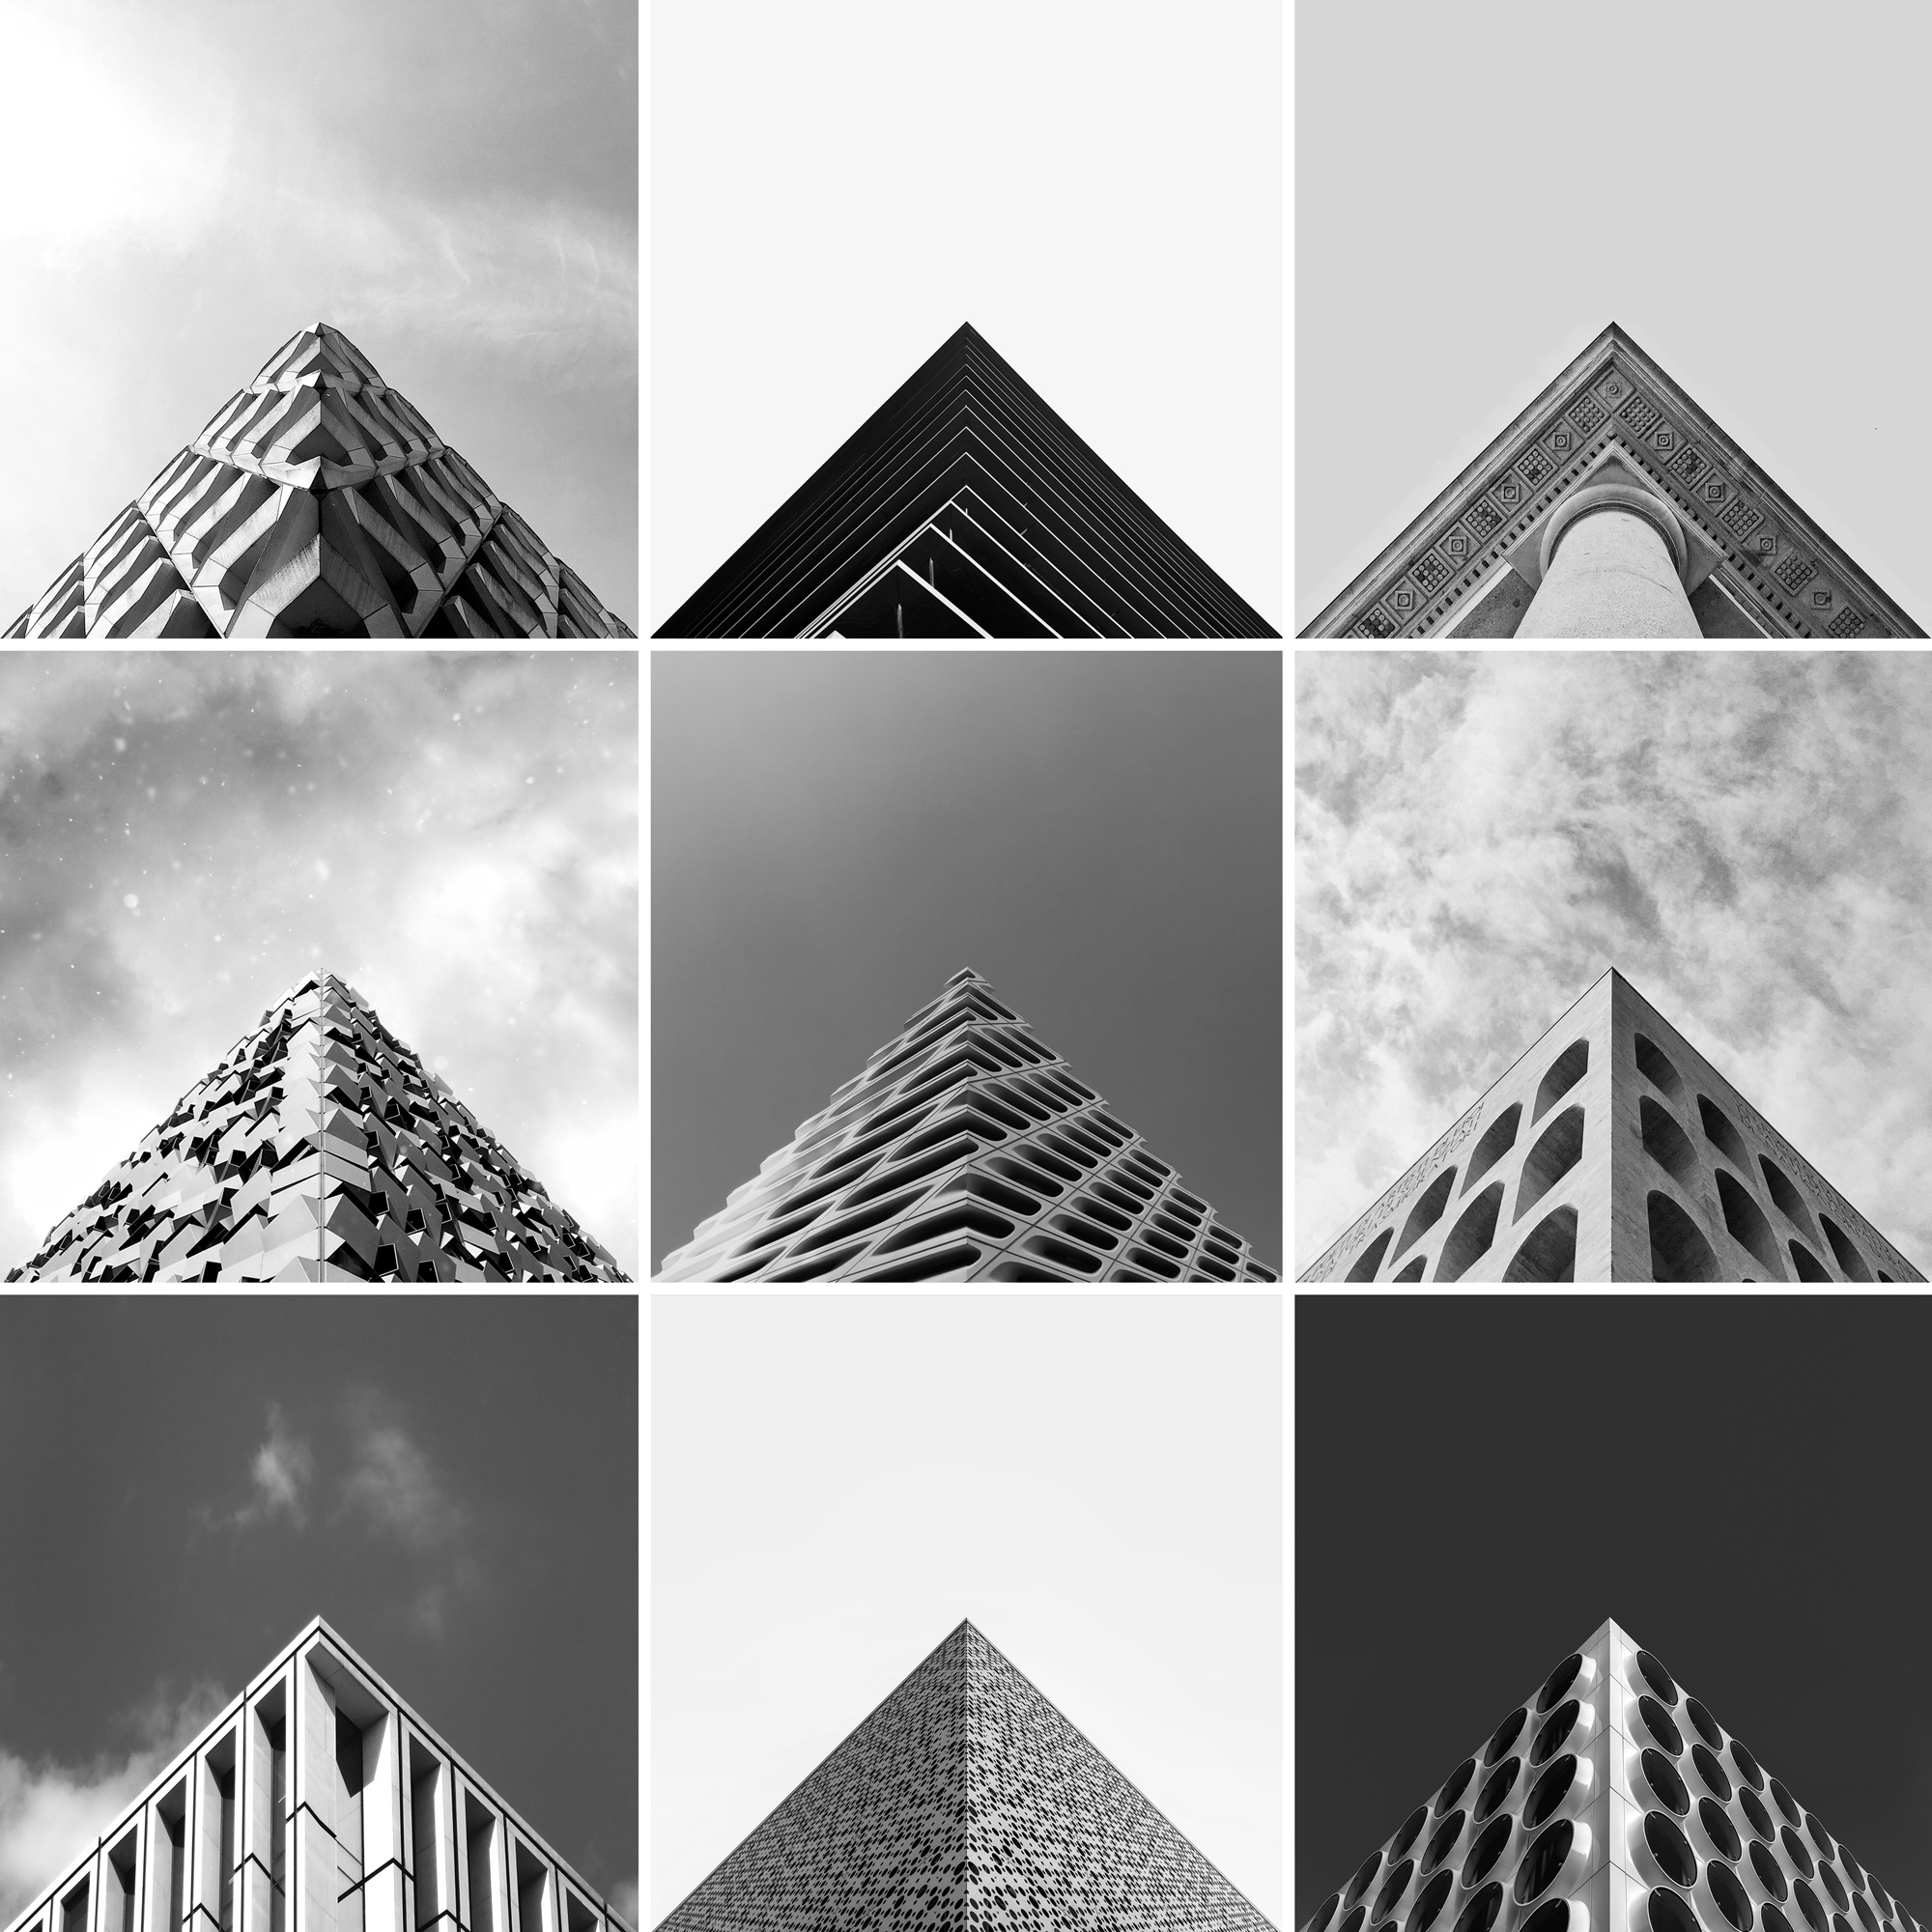 A selection of images featured on Dave Mullen's Instagram account, @geometryclub